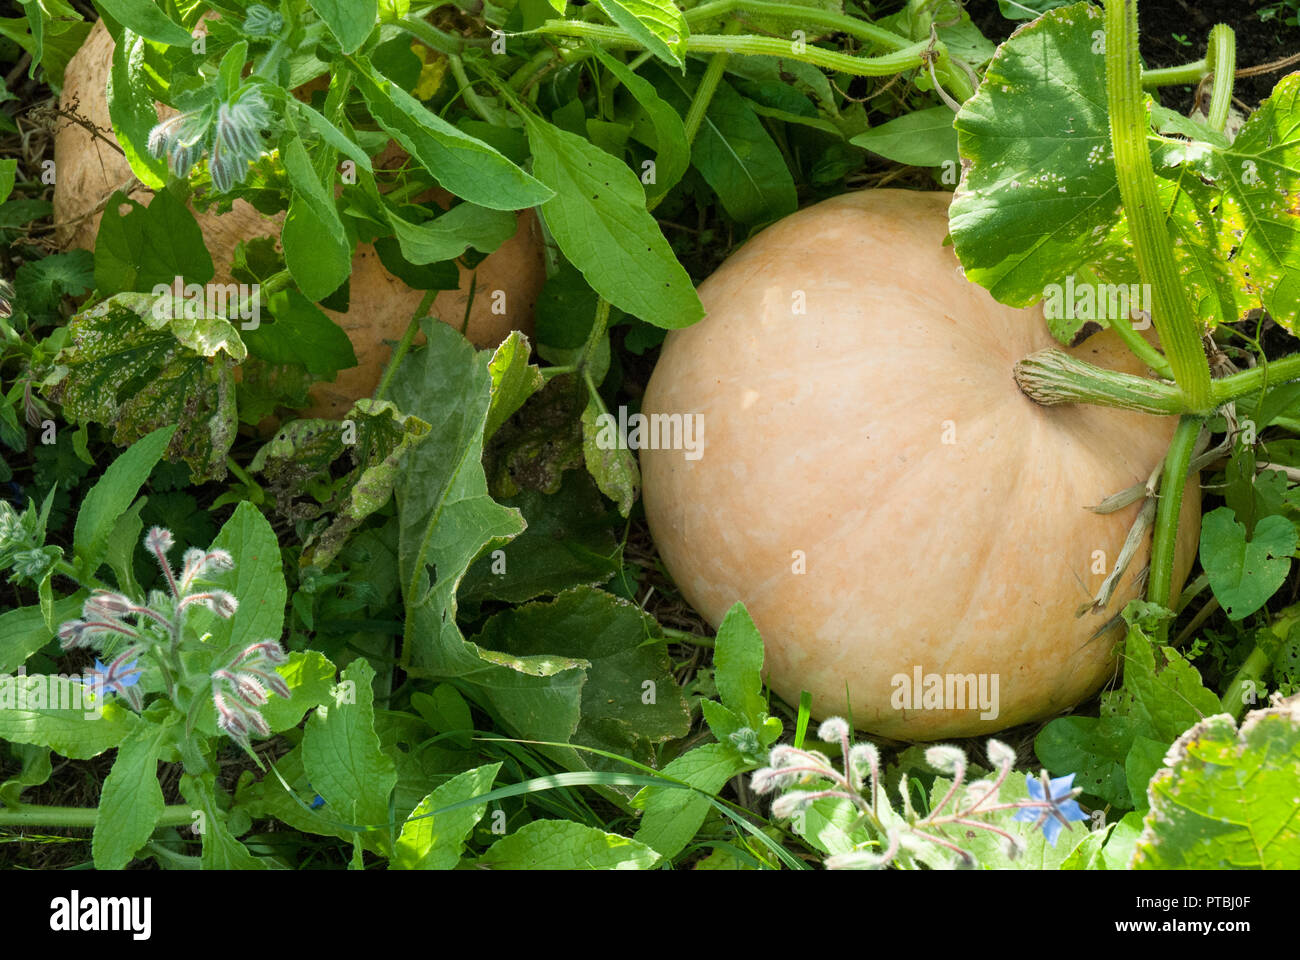 Golden pumpkins growing naturally amongst foliage. - Stock Image